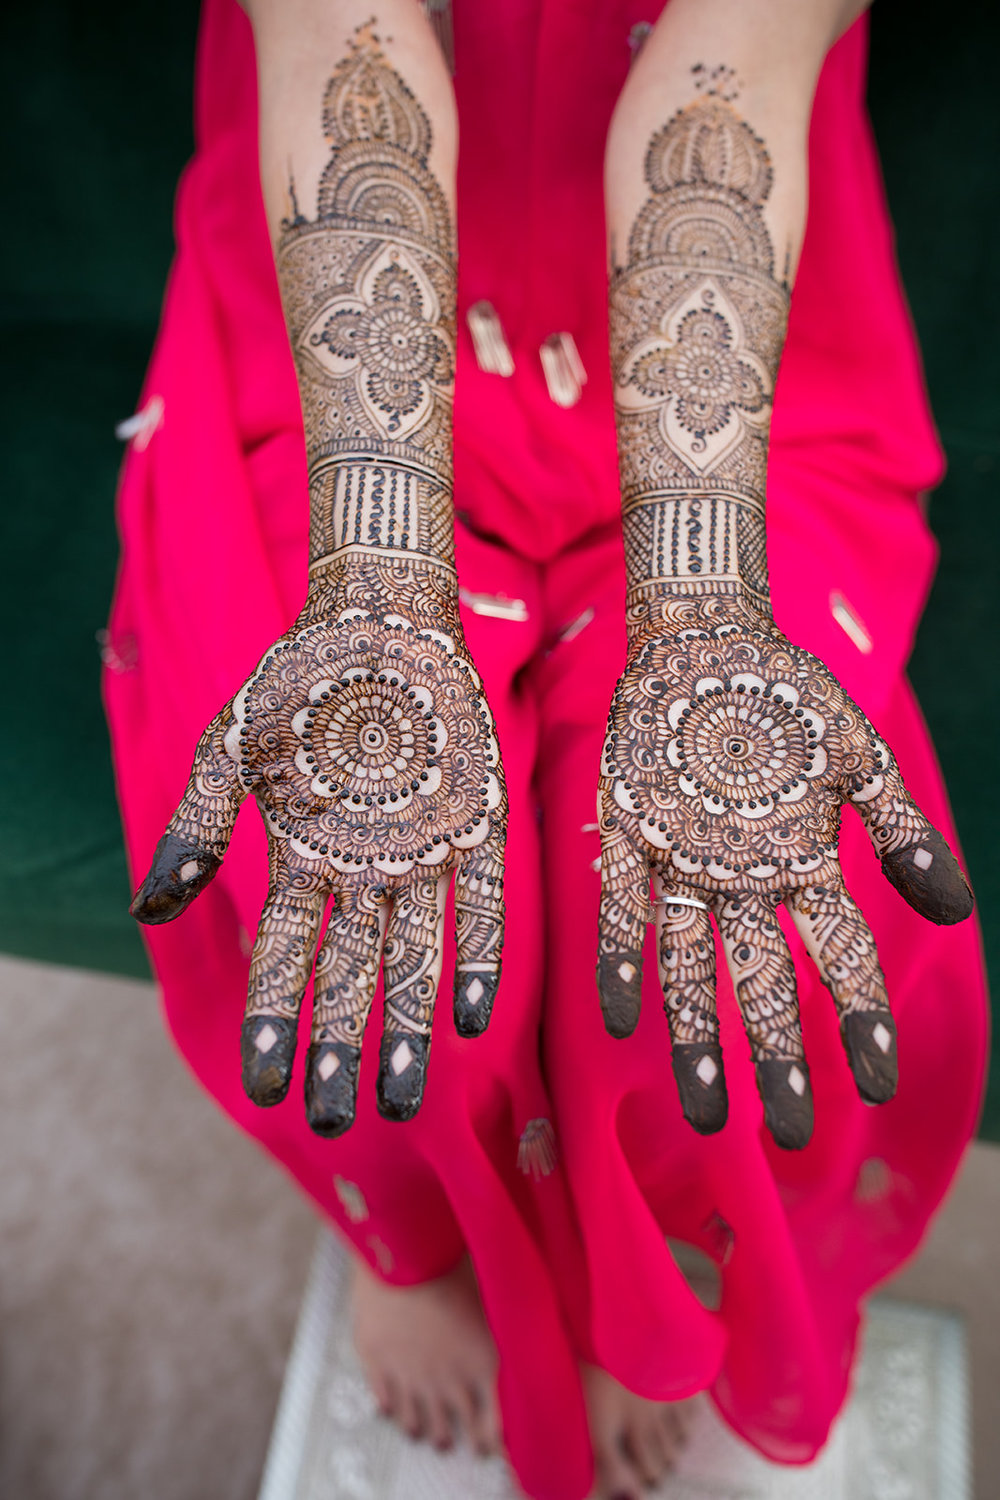 Le Cape Weddings - South Asian Wedding Rimi and Rohun - Mendhi -1804.jpg